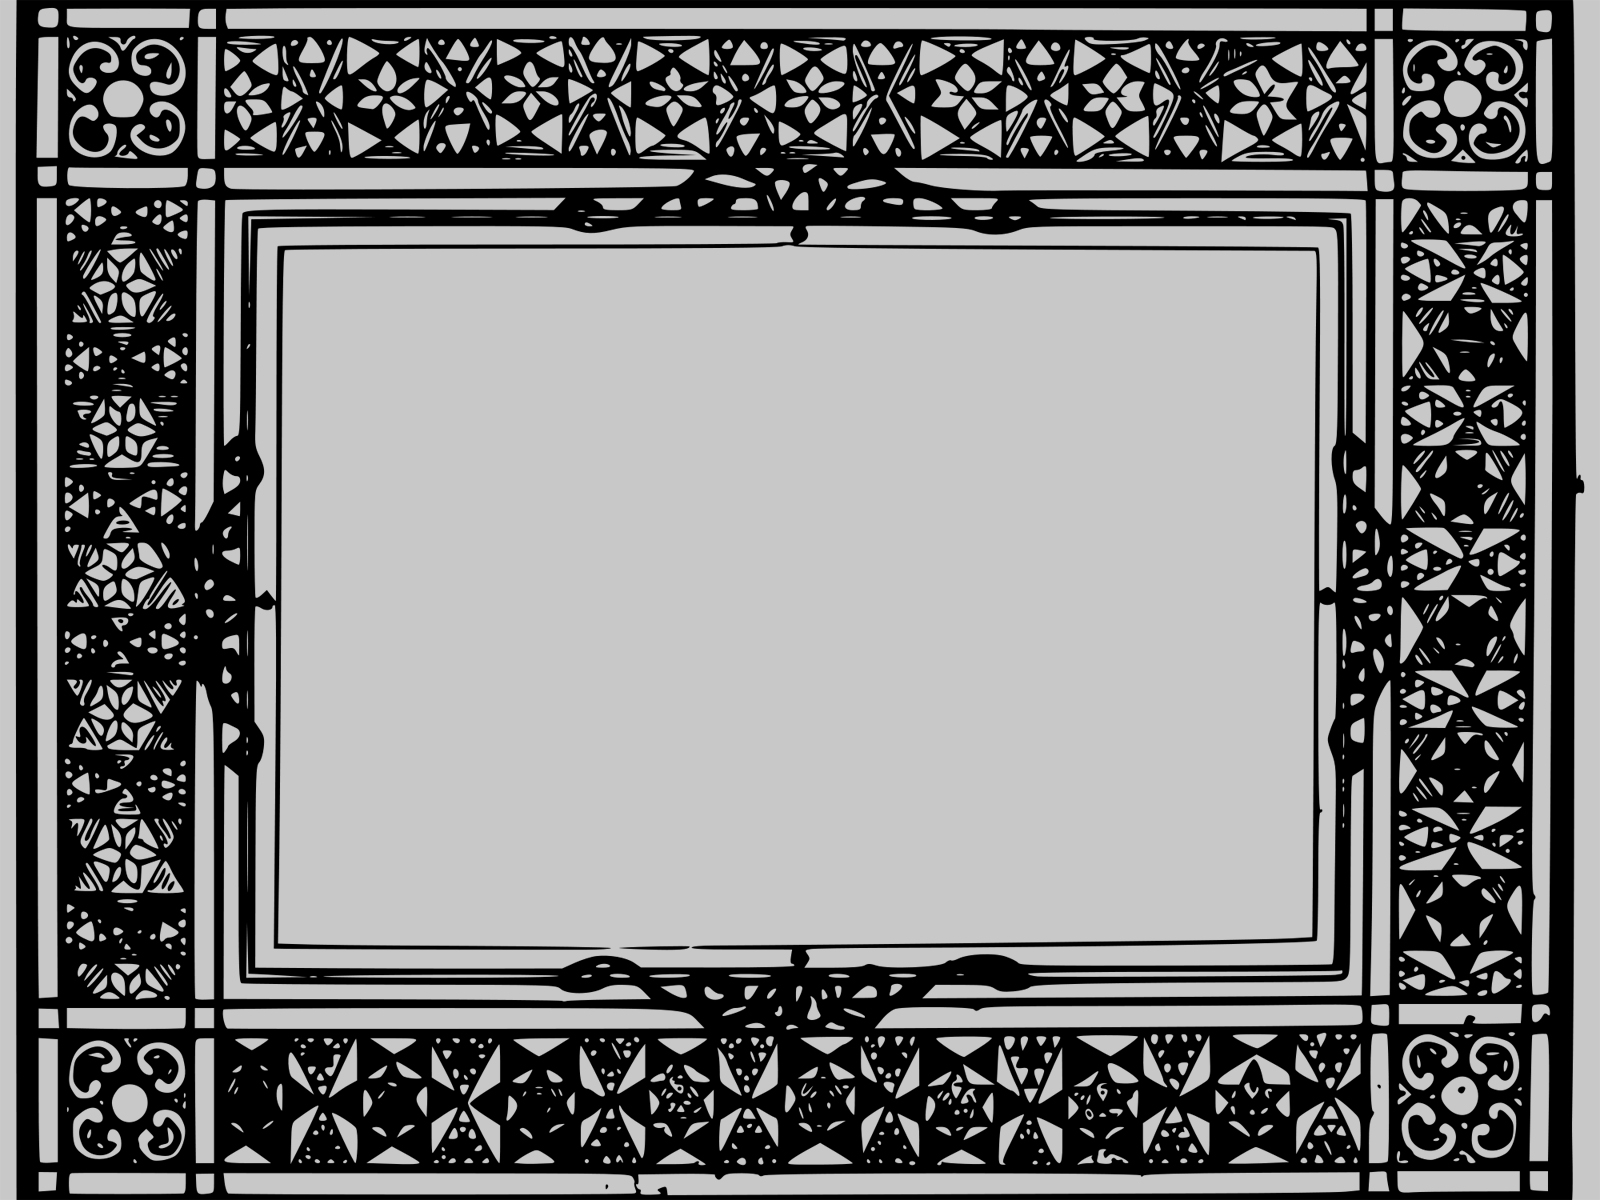 old antique frame backgrounds border   frames templates free clipart christmas border black and white free clipart christmas borders holly